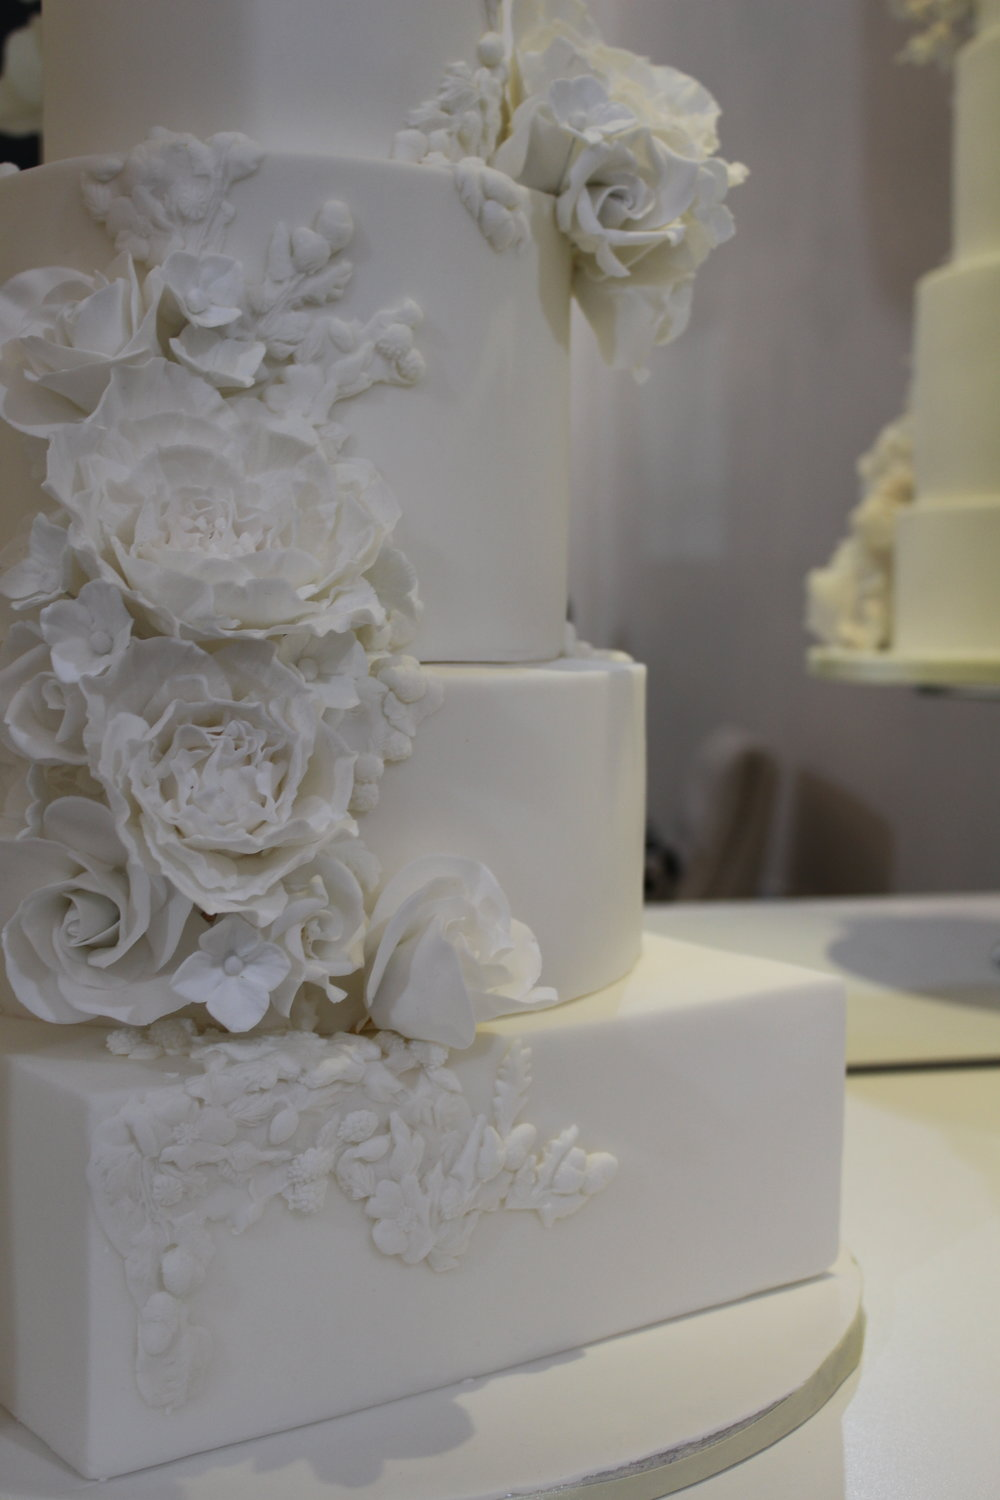 Wedding cakes to Glasgow Loch Lomond Ayrshire Borders Perthshire